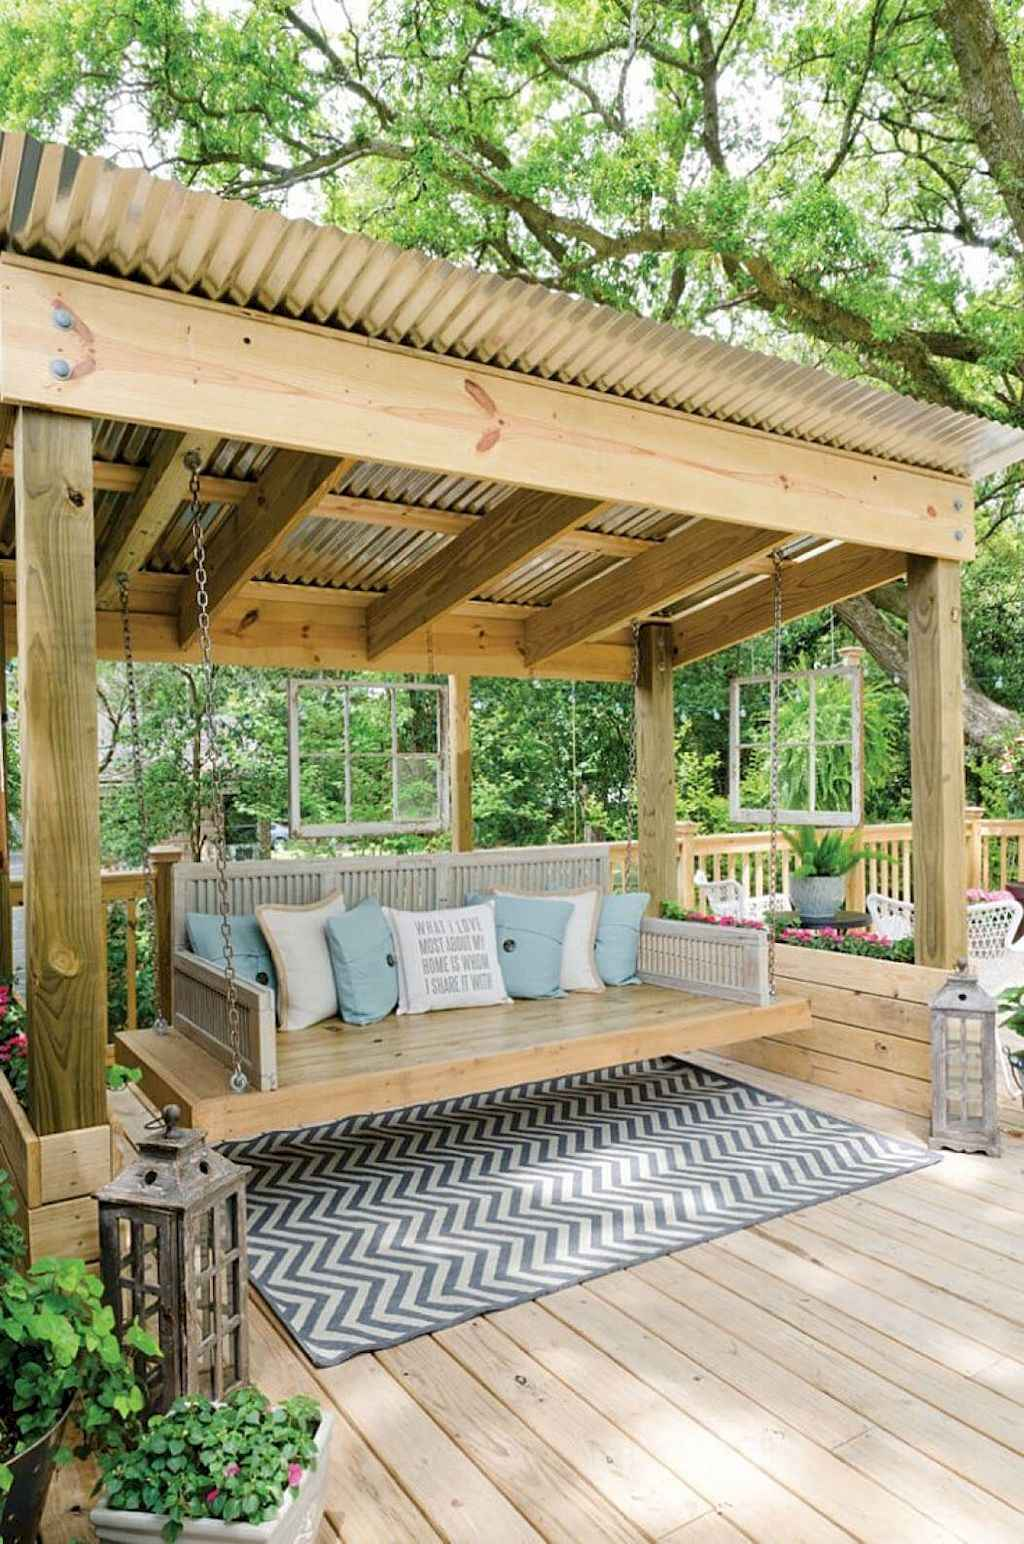 Cleverly diy porch patio decorating ideas (48)